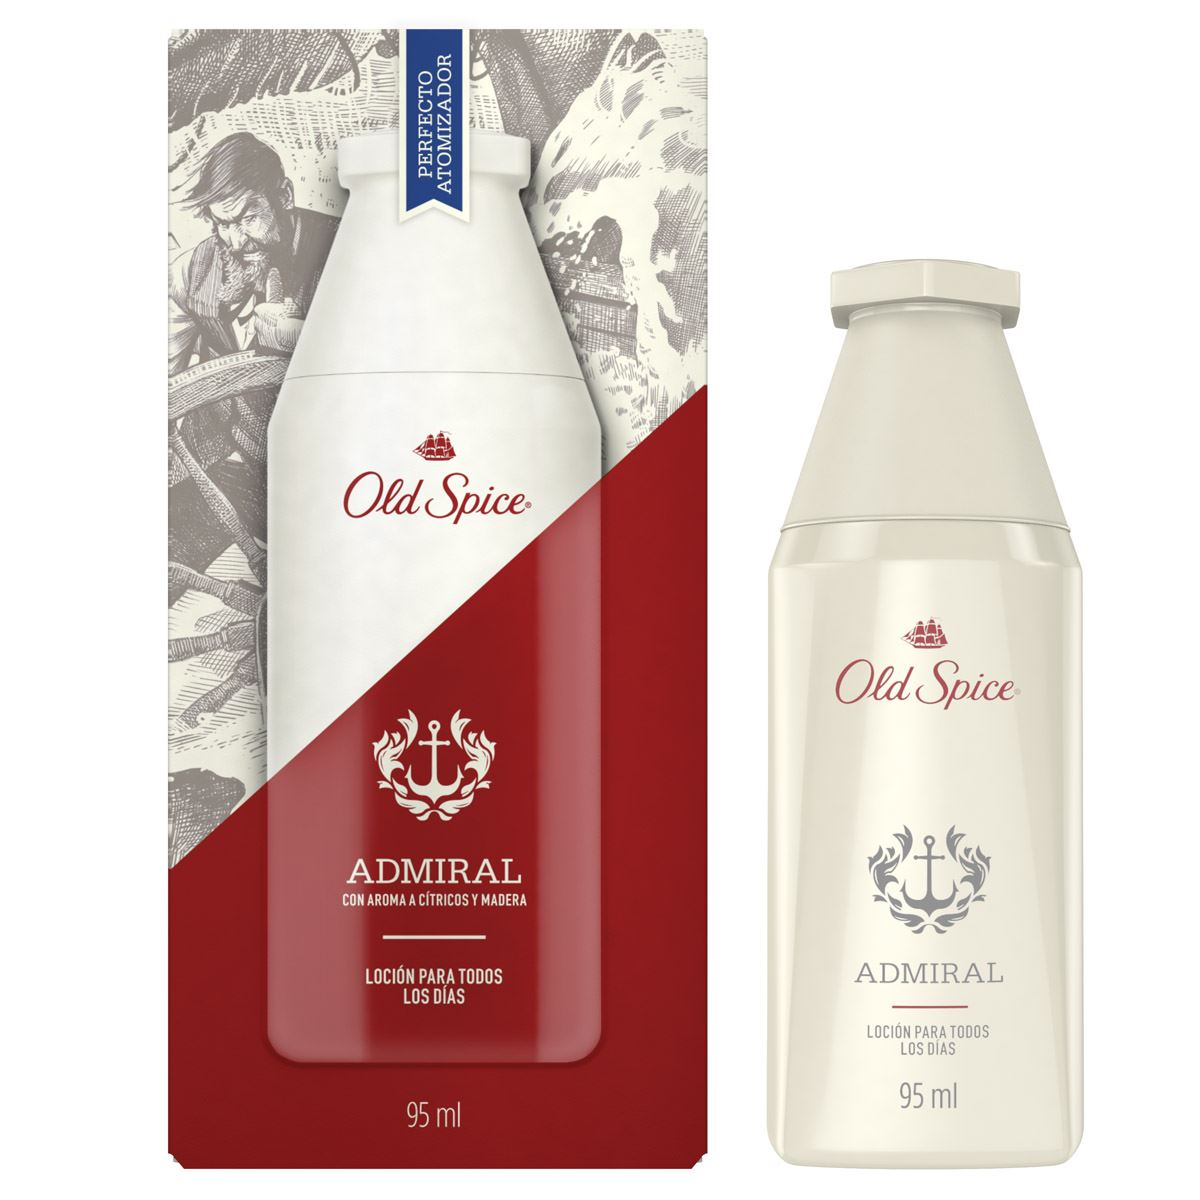 Loción admiral spy 95 ml old spice  - Sanborns